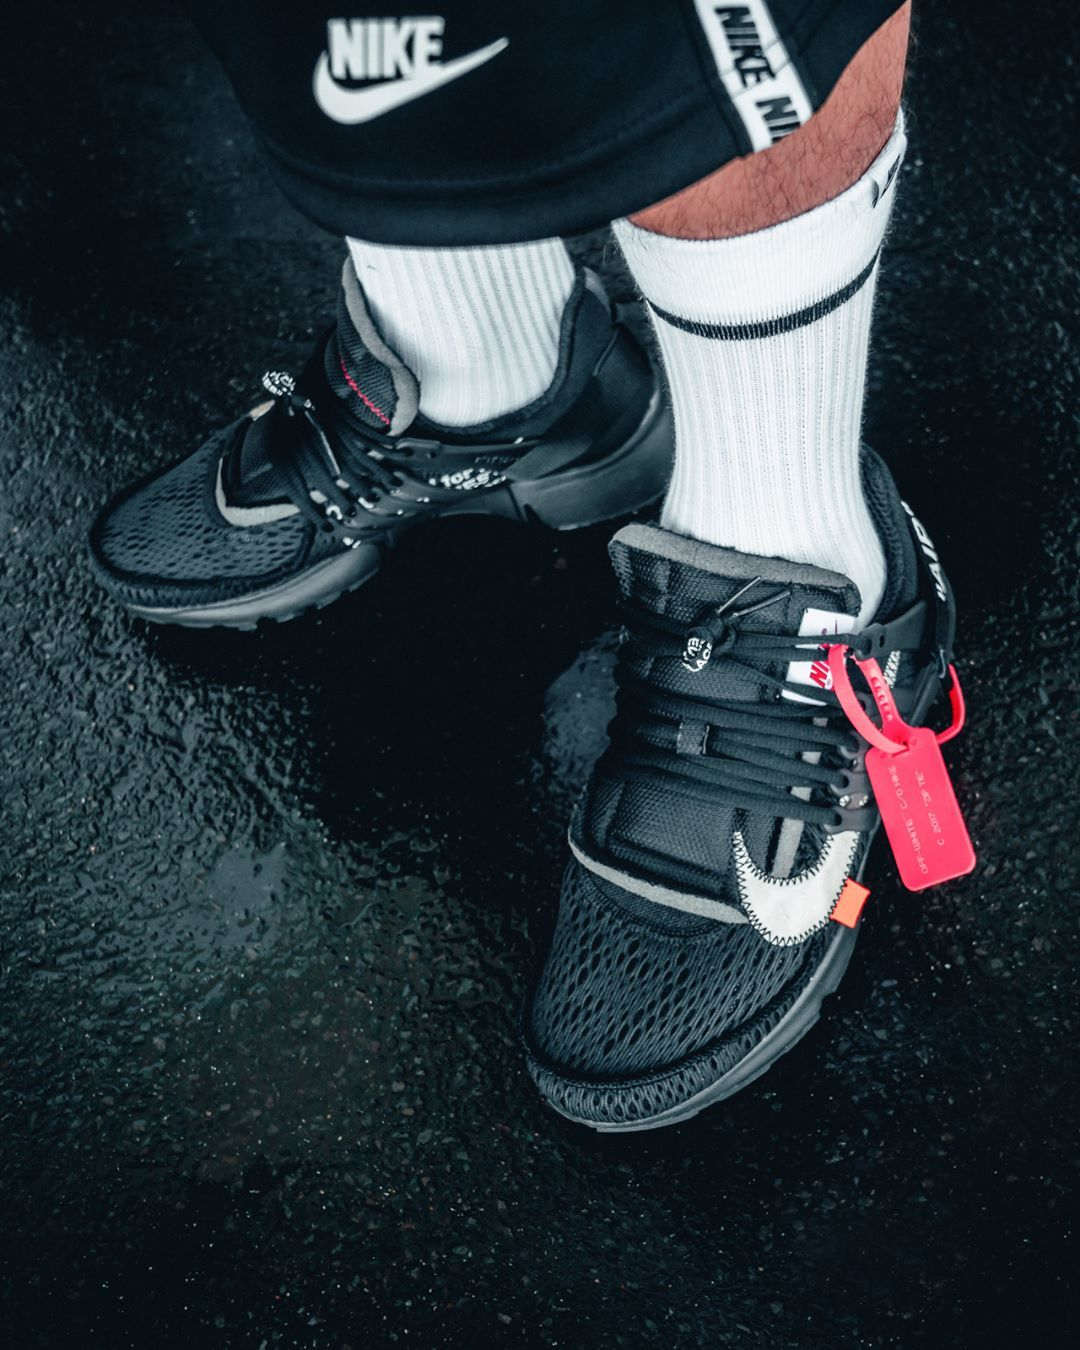 huge selection of b19c9 f145d Nike Air Presto Black, Nike Presto, Off White Converse, New Sneaker  Releases,